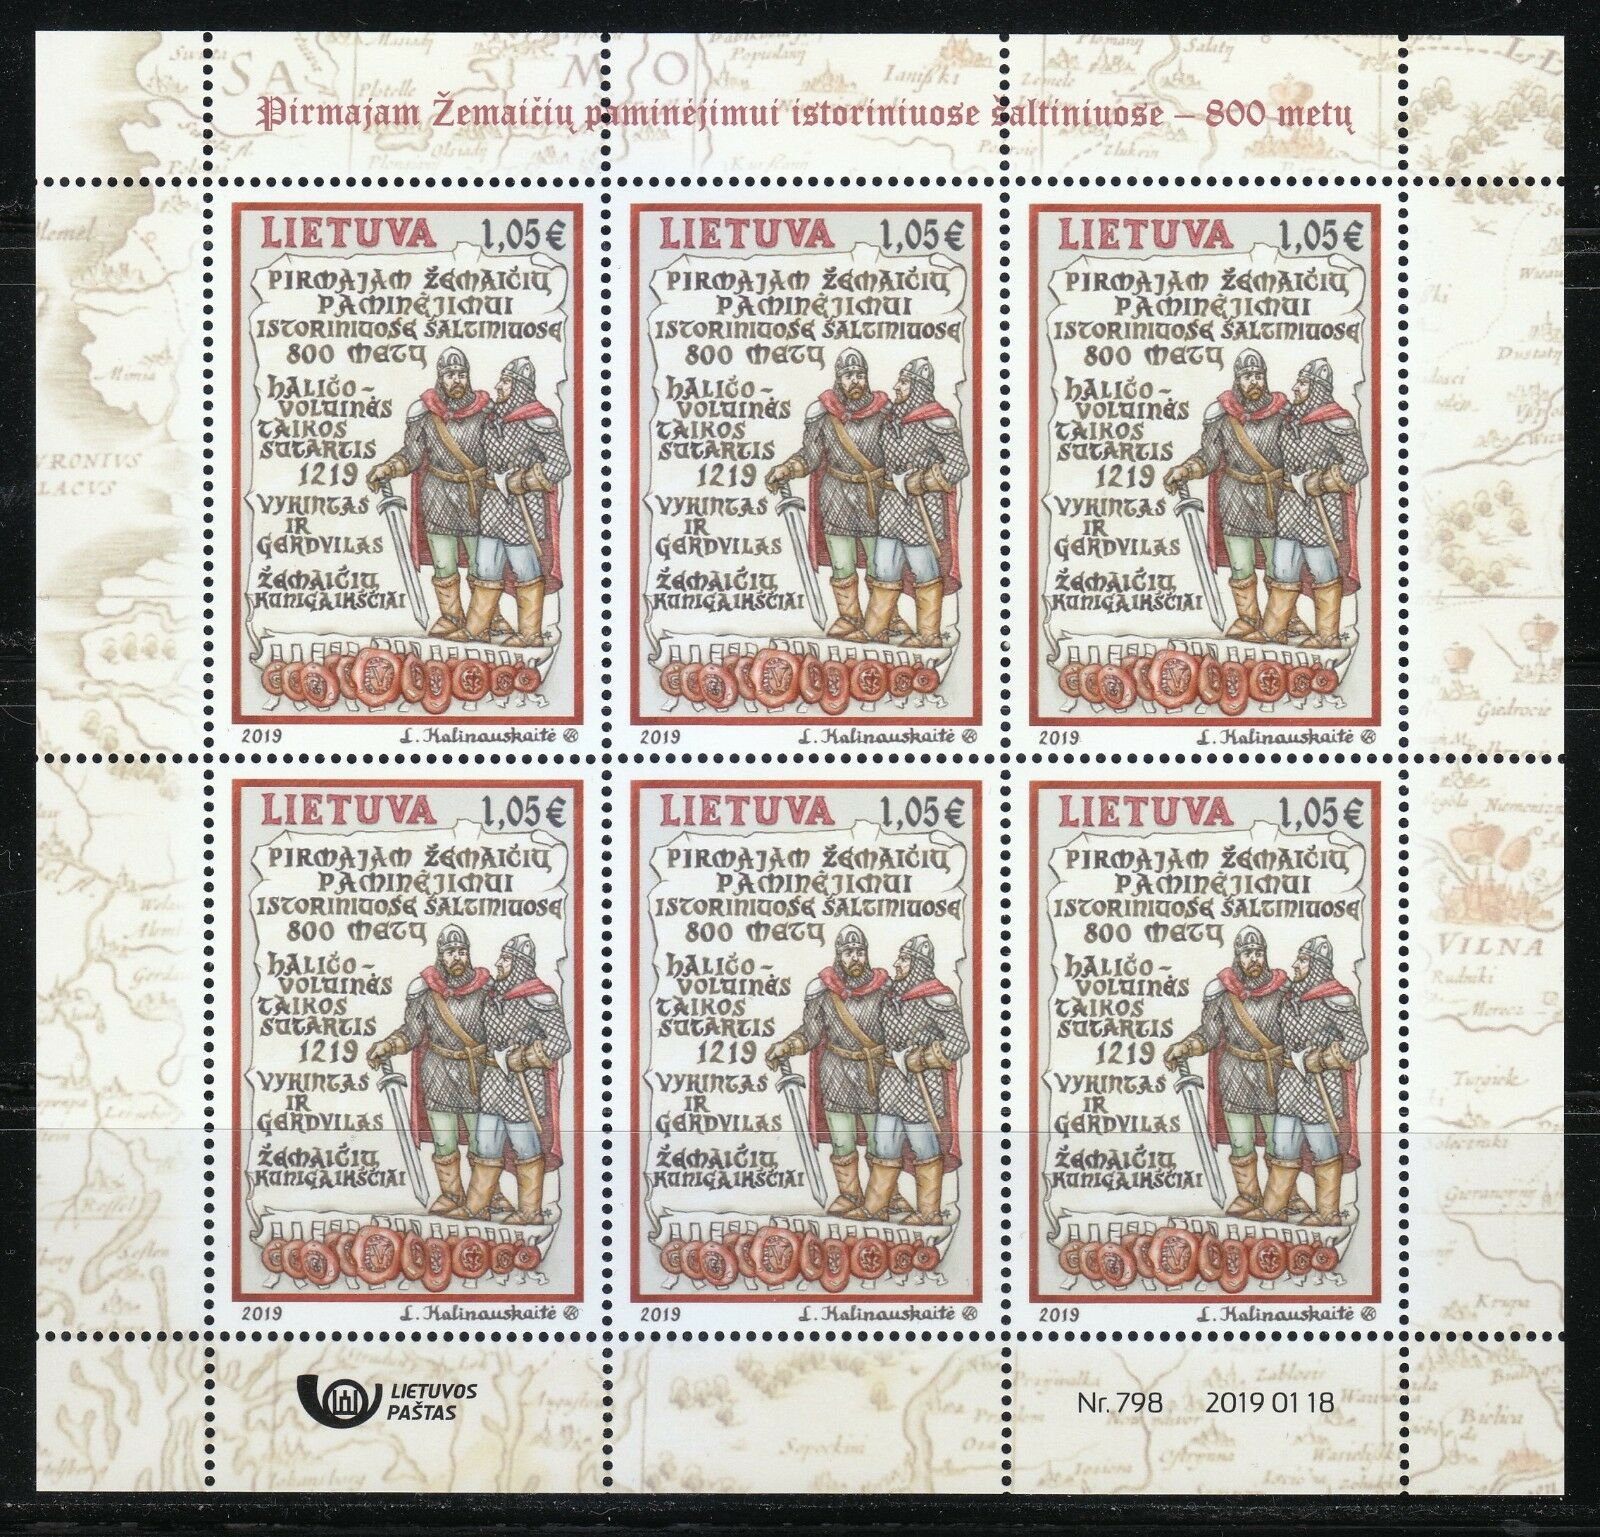 Lithuania - First Mention of Samogitians (January 18, 2019) sheet of 6